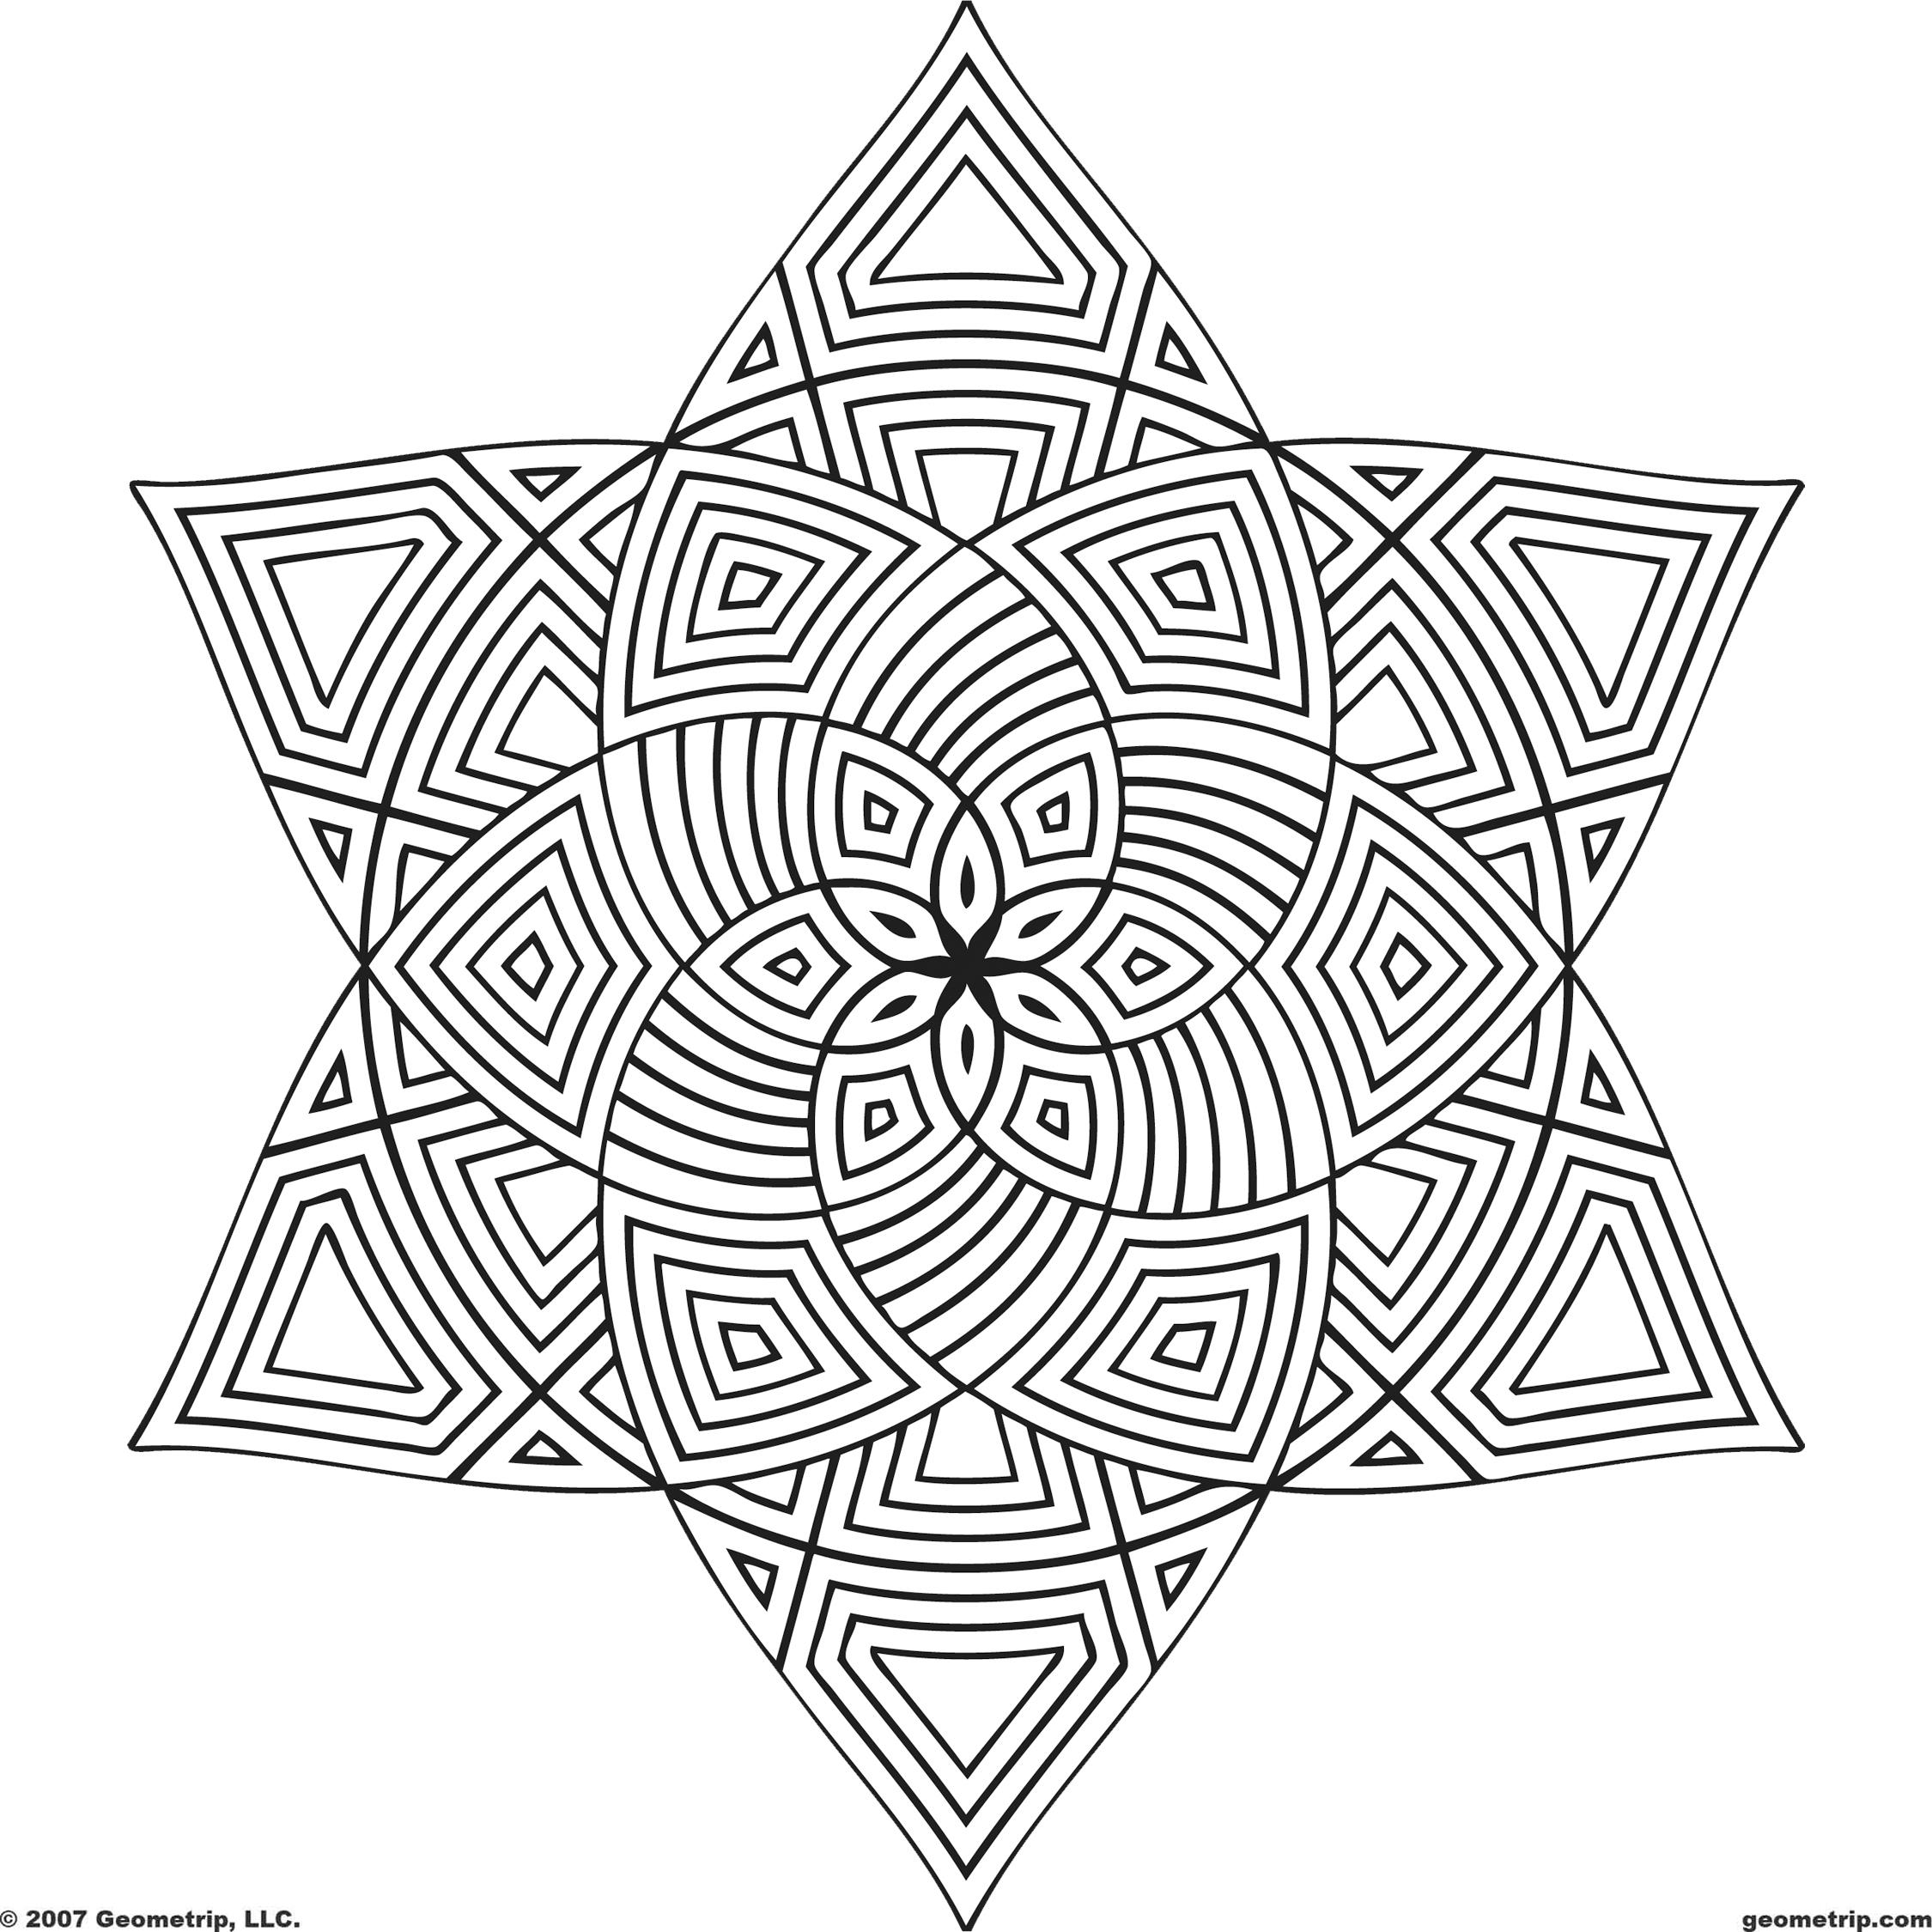 geometric patterns to color geometric shape coloring pages coloring home to patterns color geometric